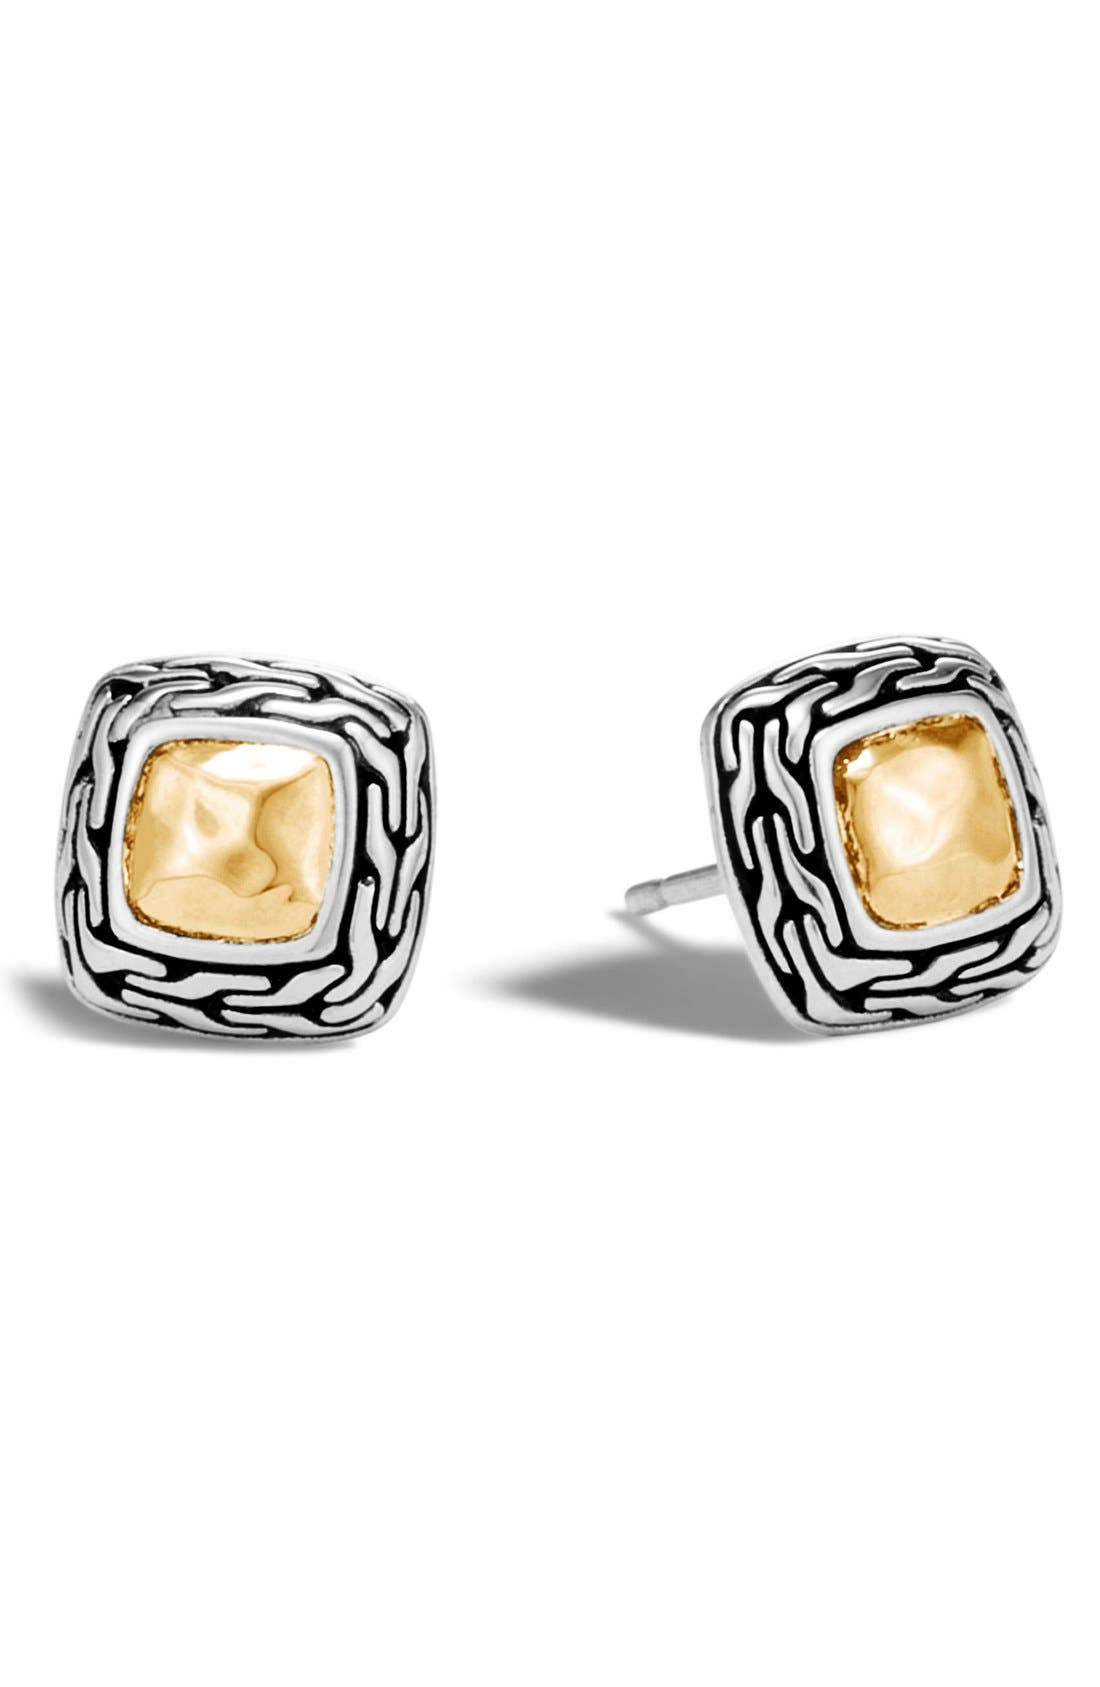 Heritage Stud Earrings,                             Main thumbnail 1, color,                             Silver/ Gold